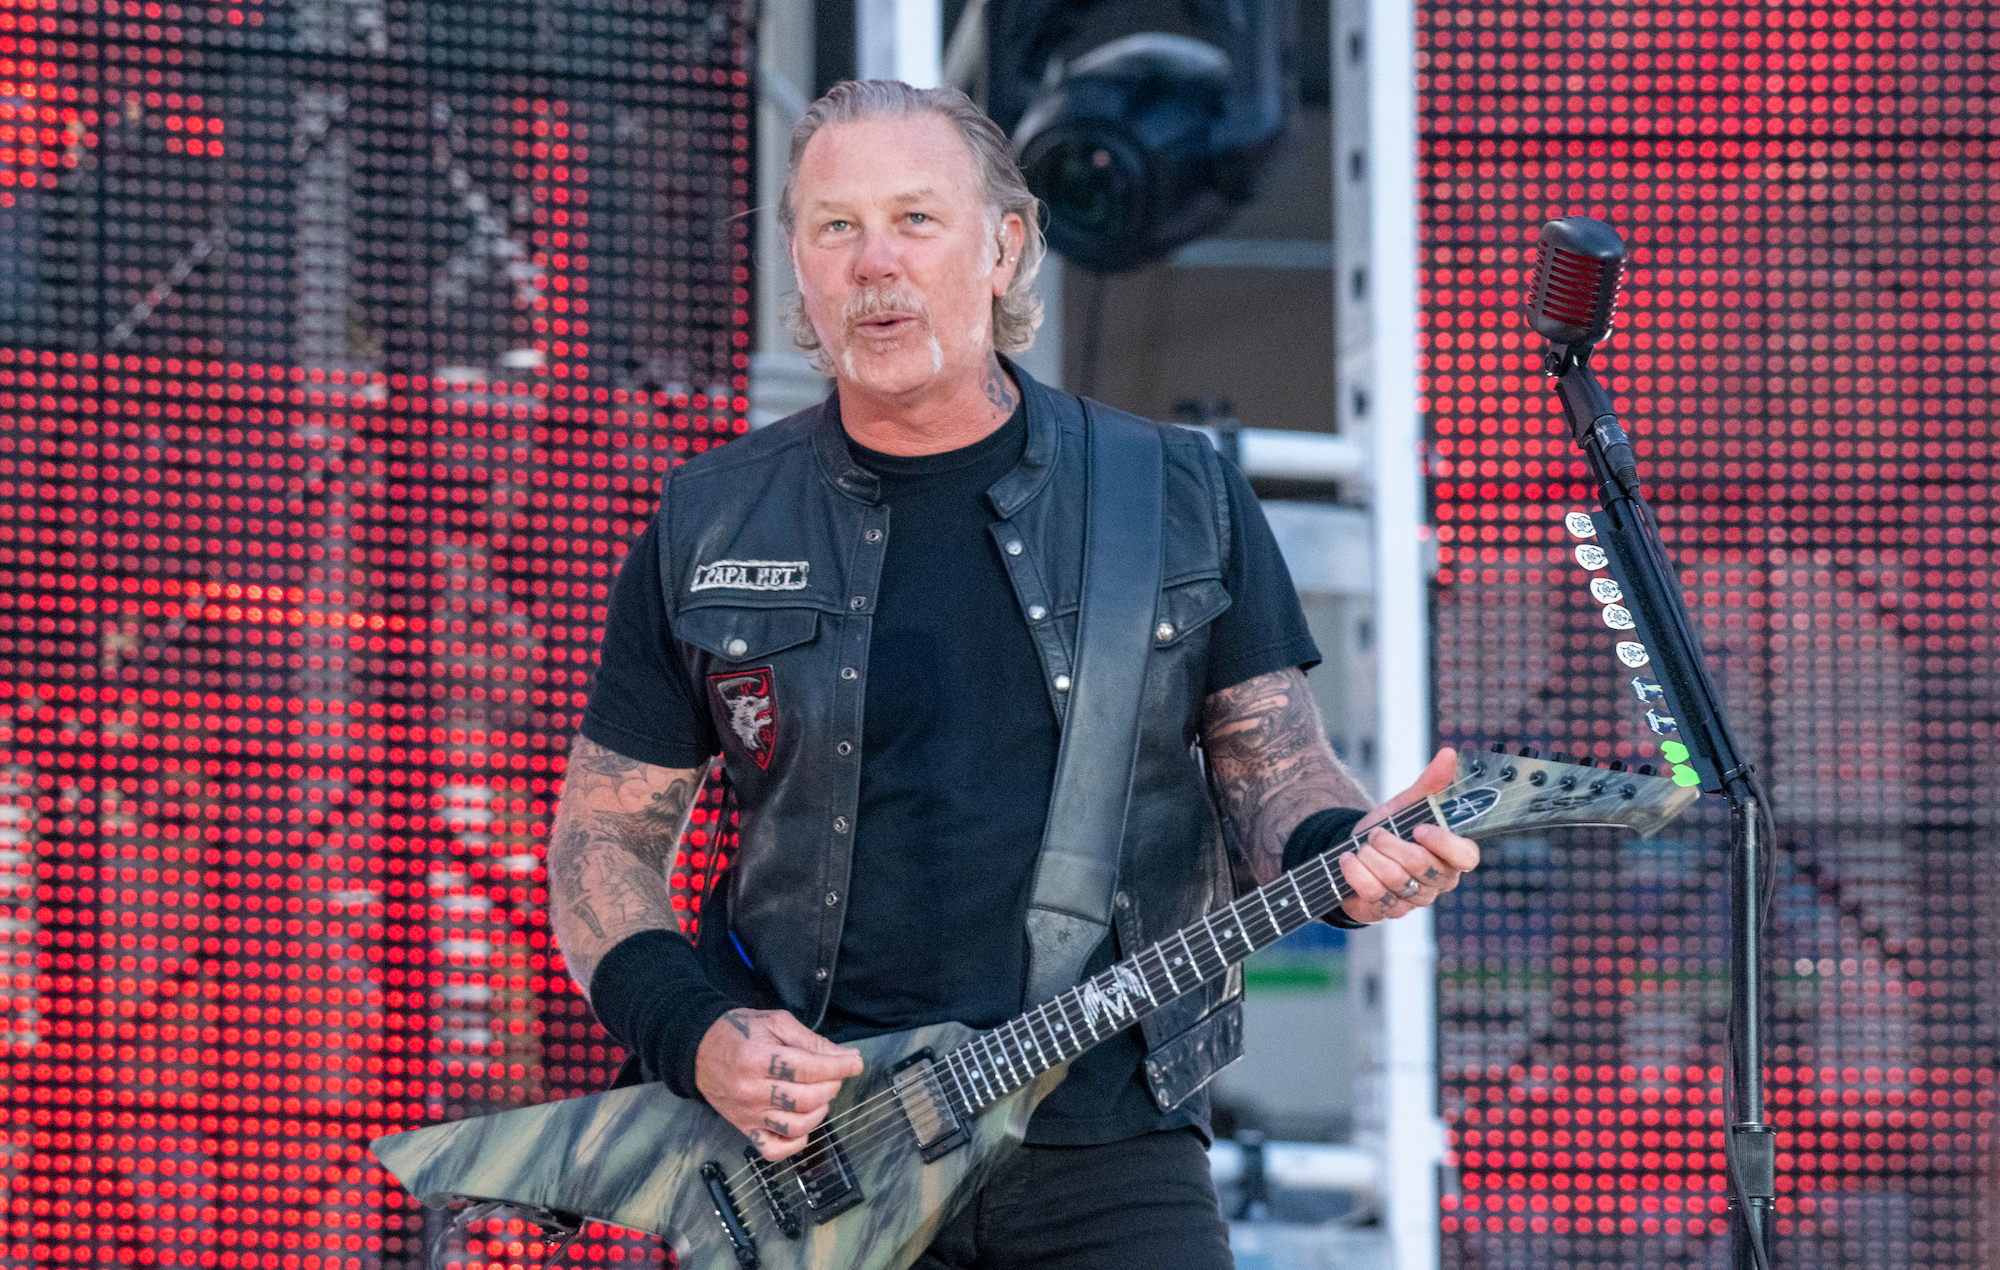 A new species of venomous snake has been named after Metallica's James Hetfield | NME